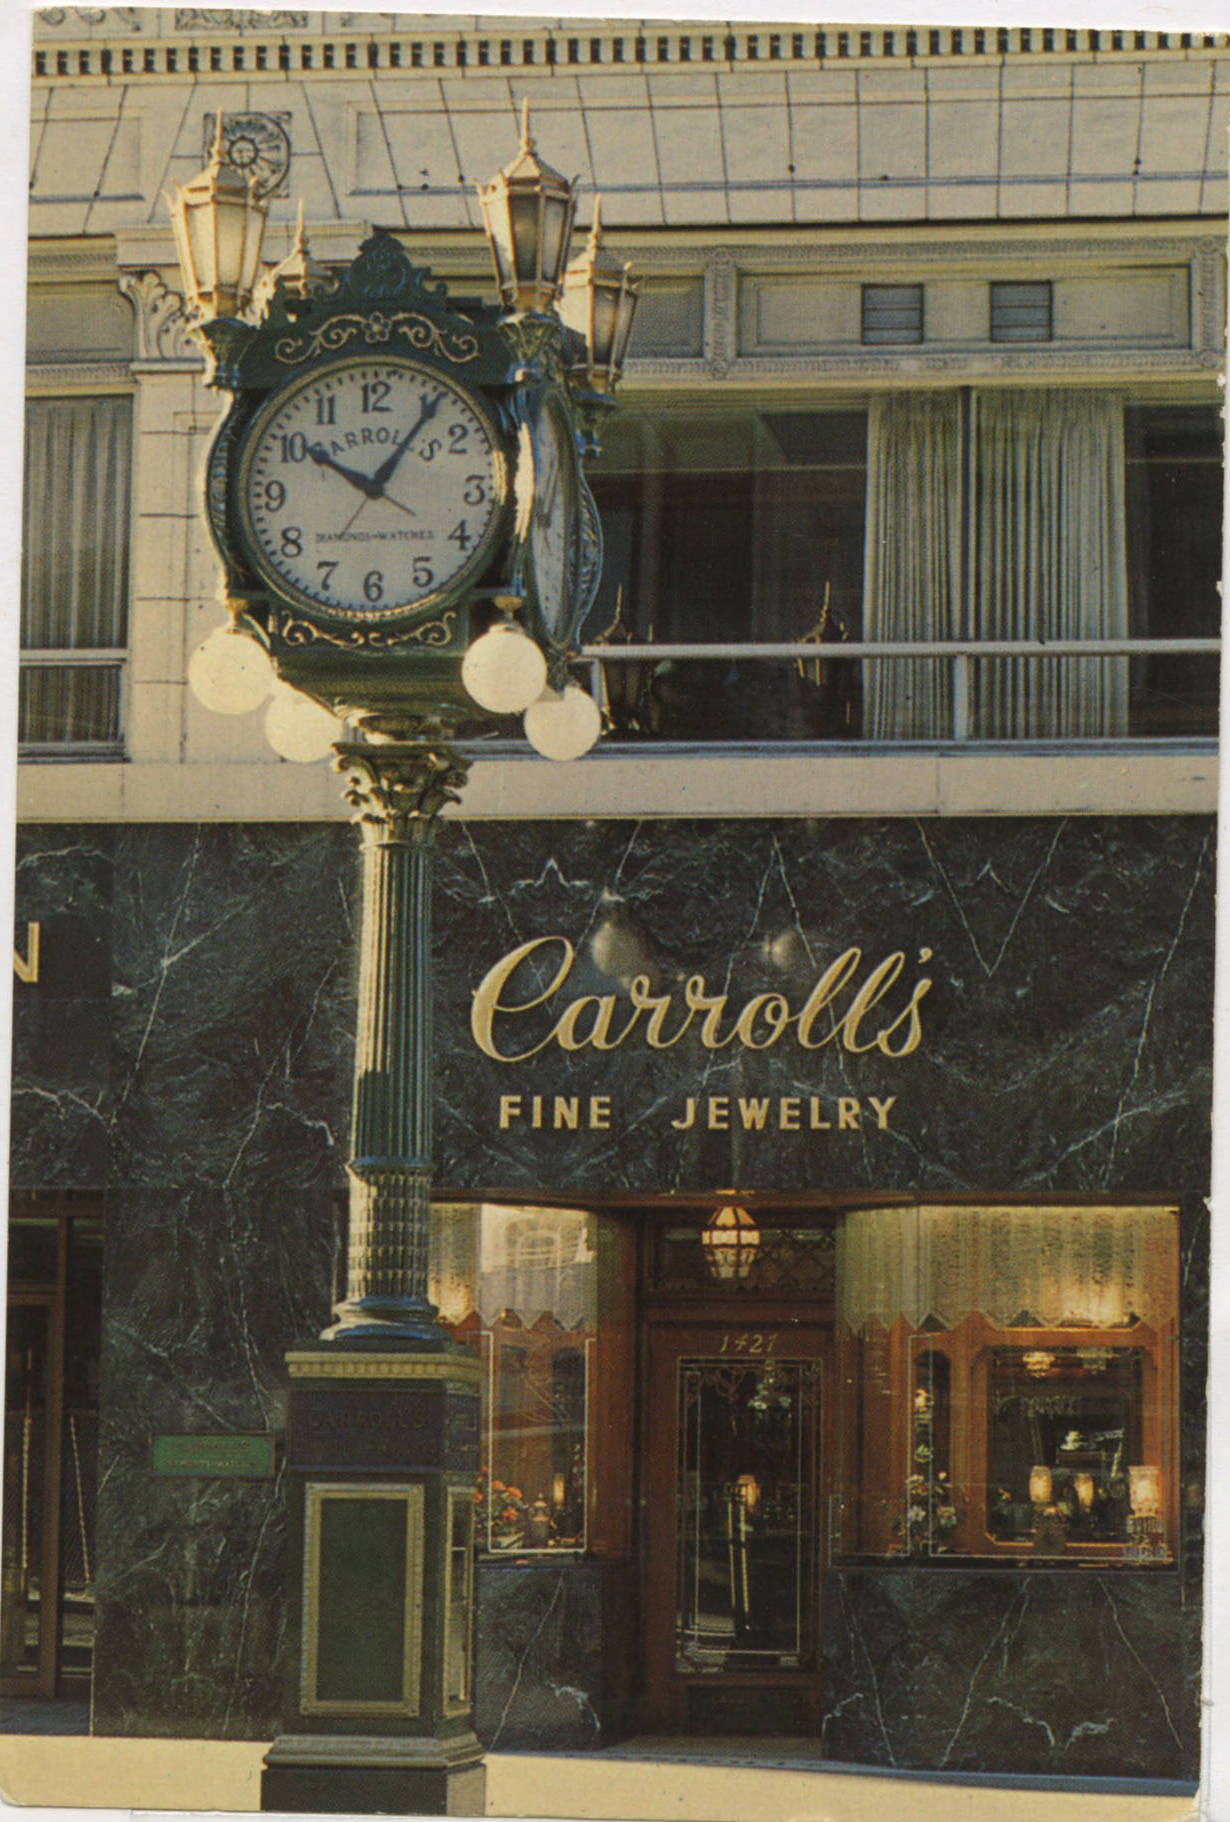 Carroll's Fine Jewelry, ca. 1970